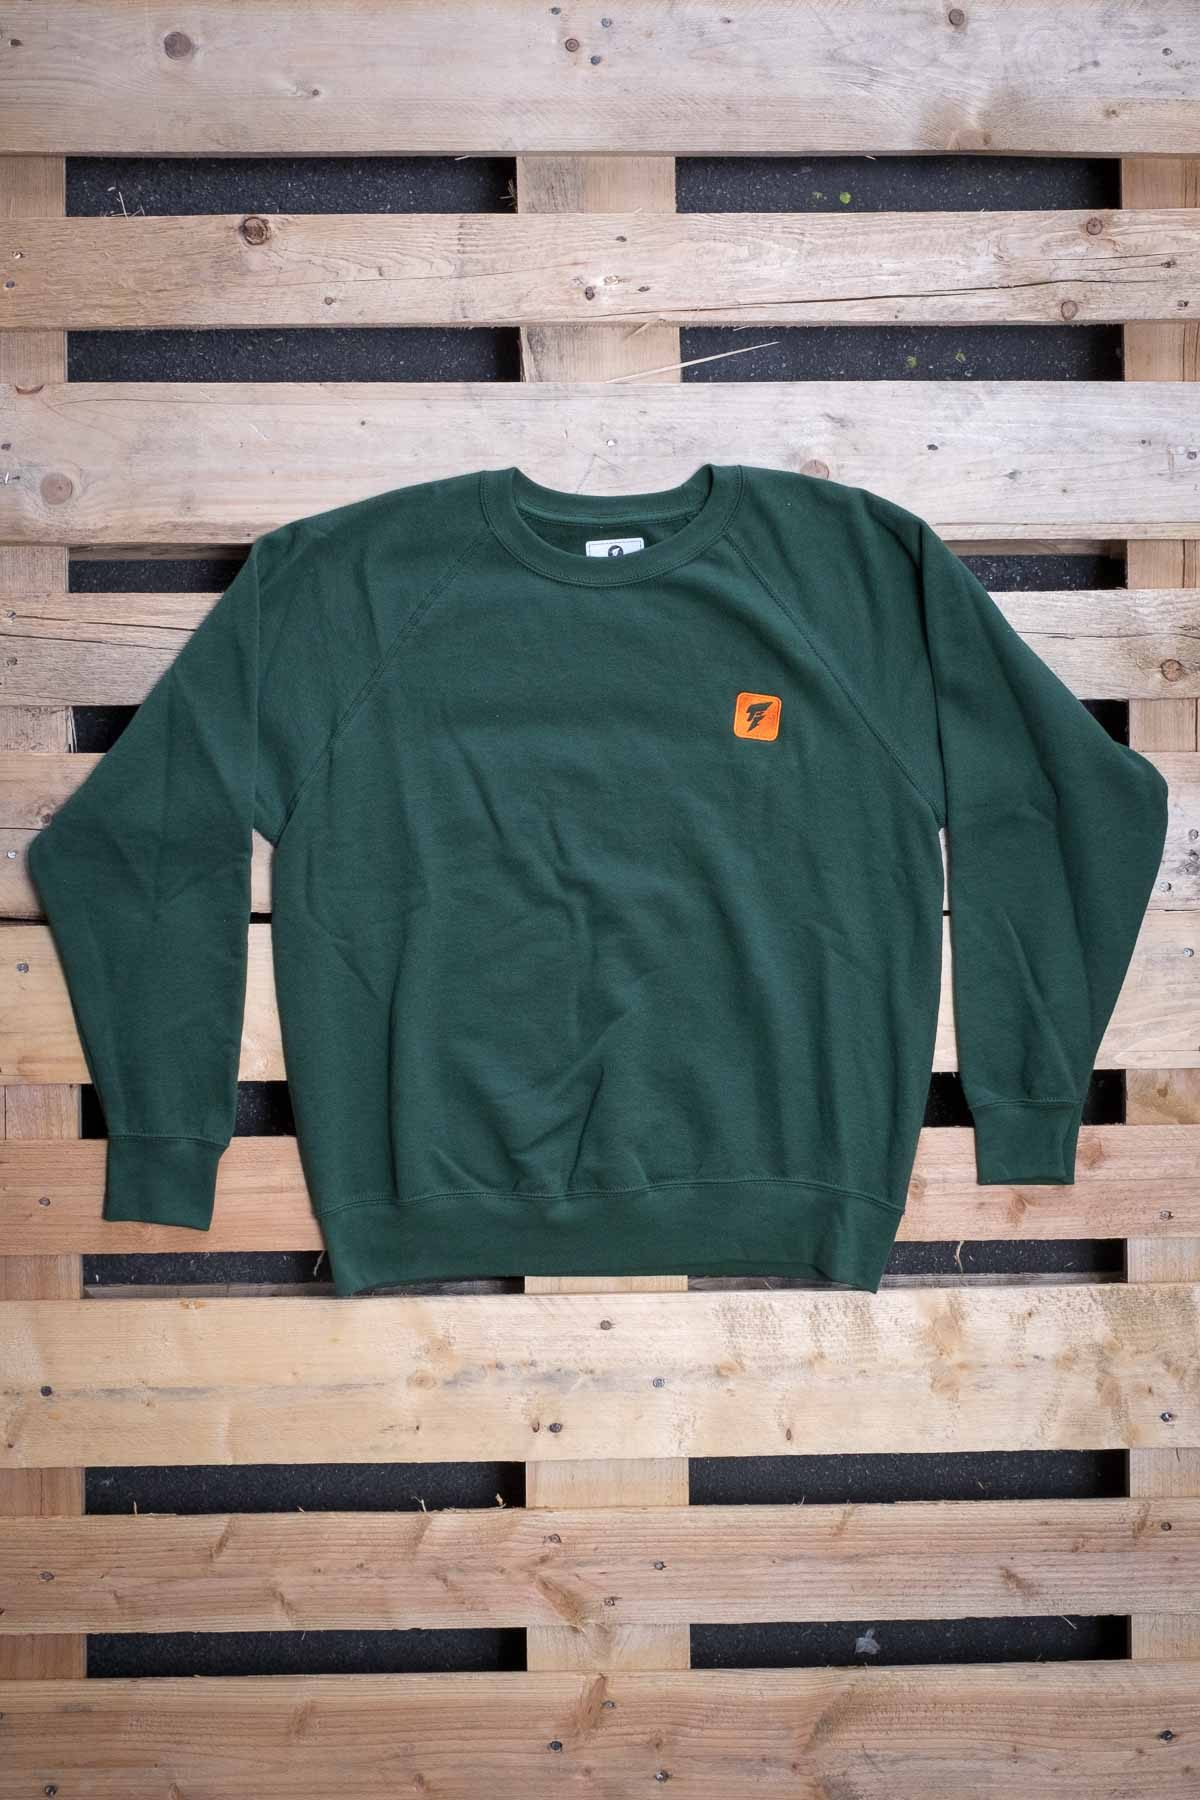 Full Mine Raglan Light Sweatshirt Green